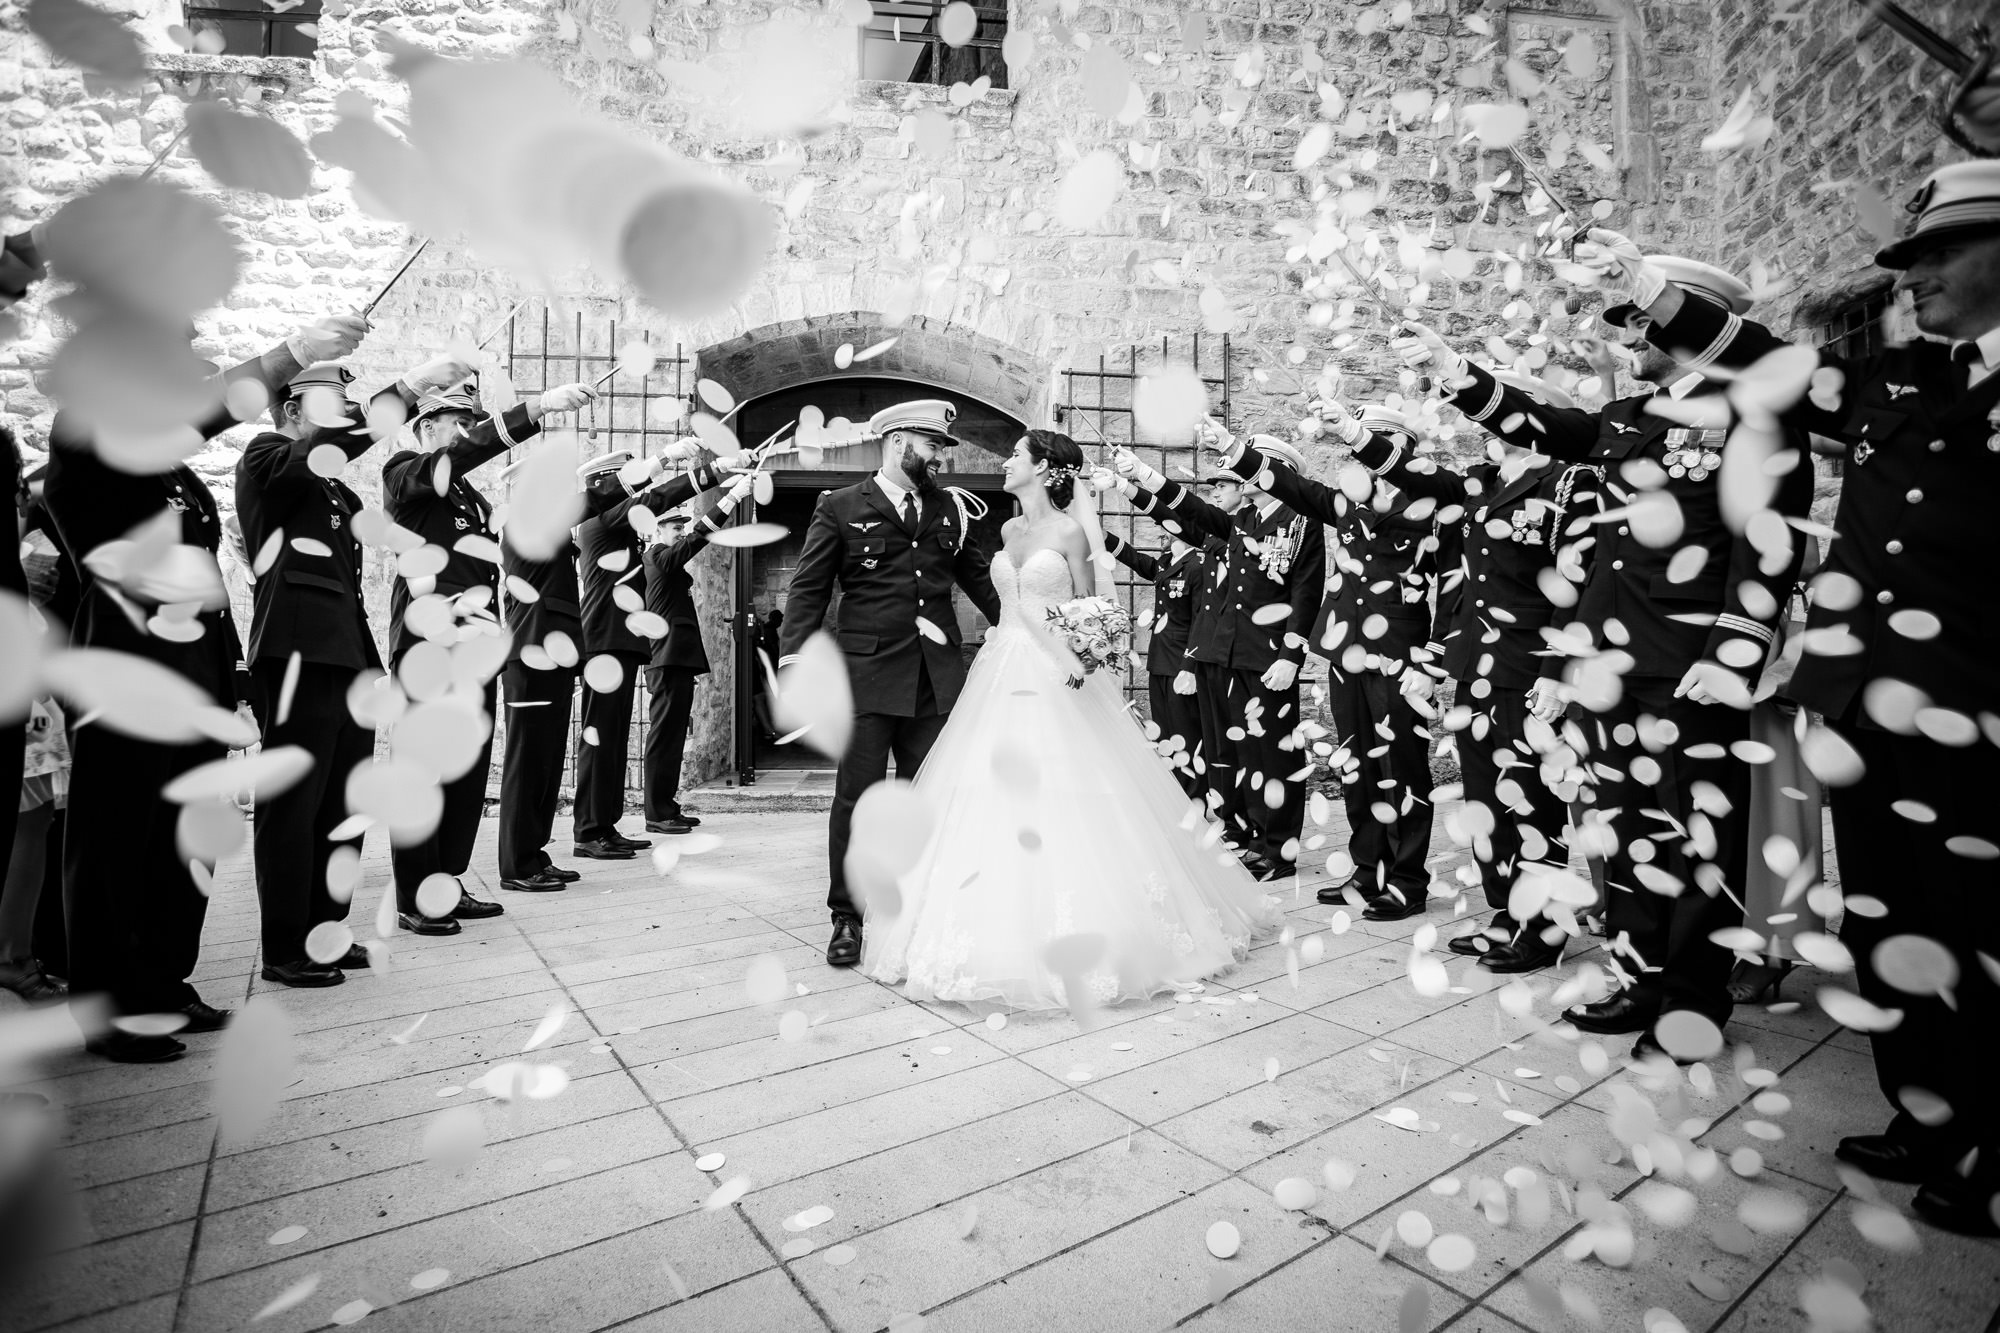 Mariage Trets Provence Chateau Roquefeuille